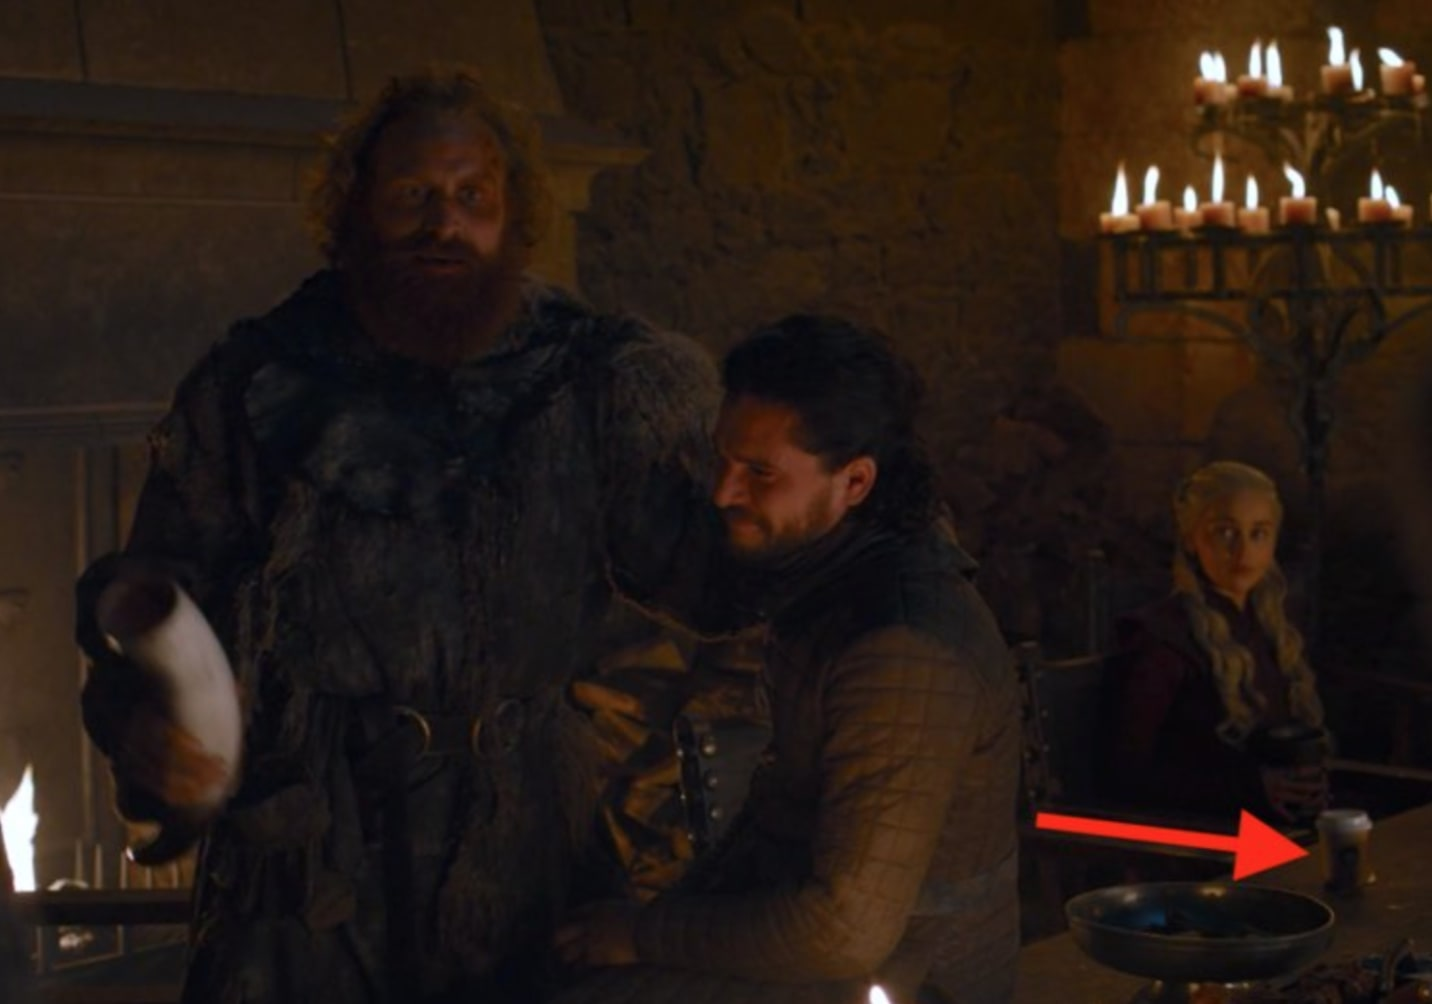 Game of Thrones Fans React to the Scene-Stealing Starbucks Cup - TV